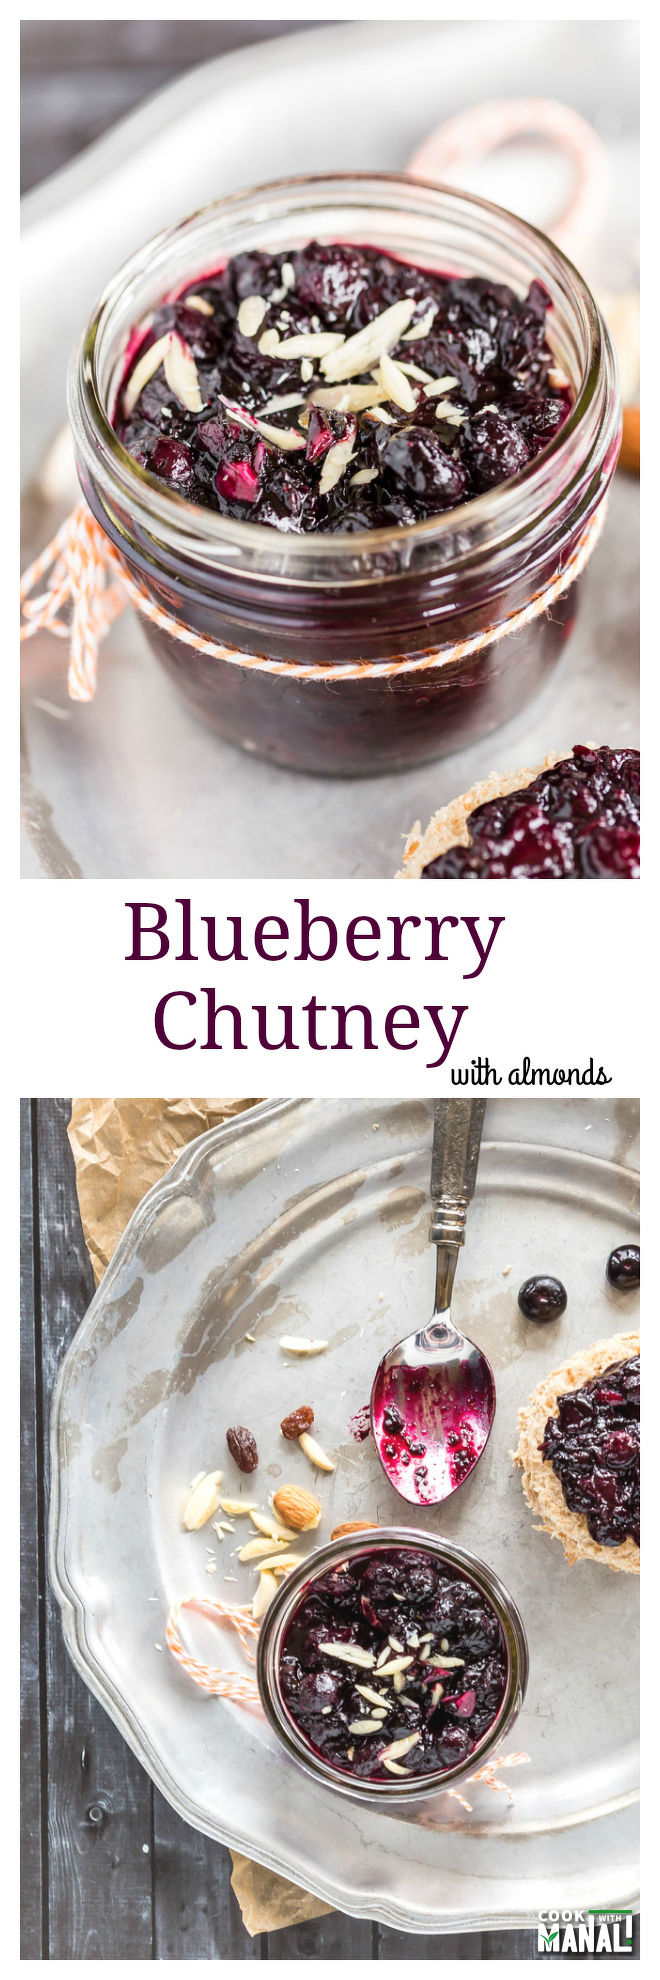 Blueberry Chutney with Almonds Collage